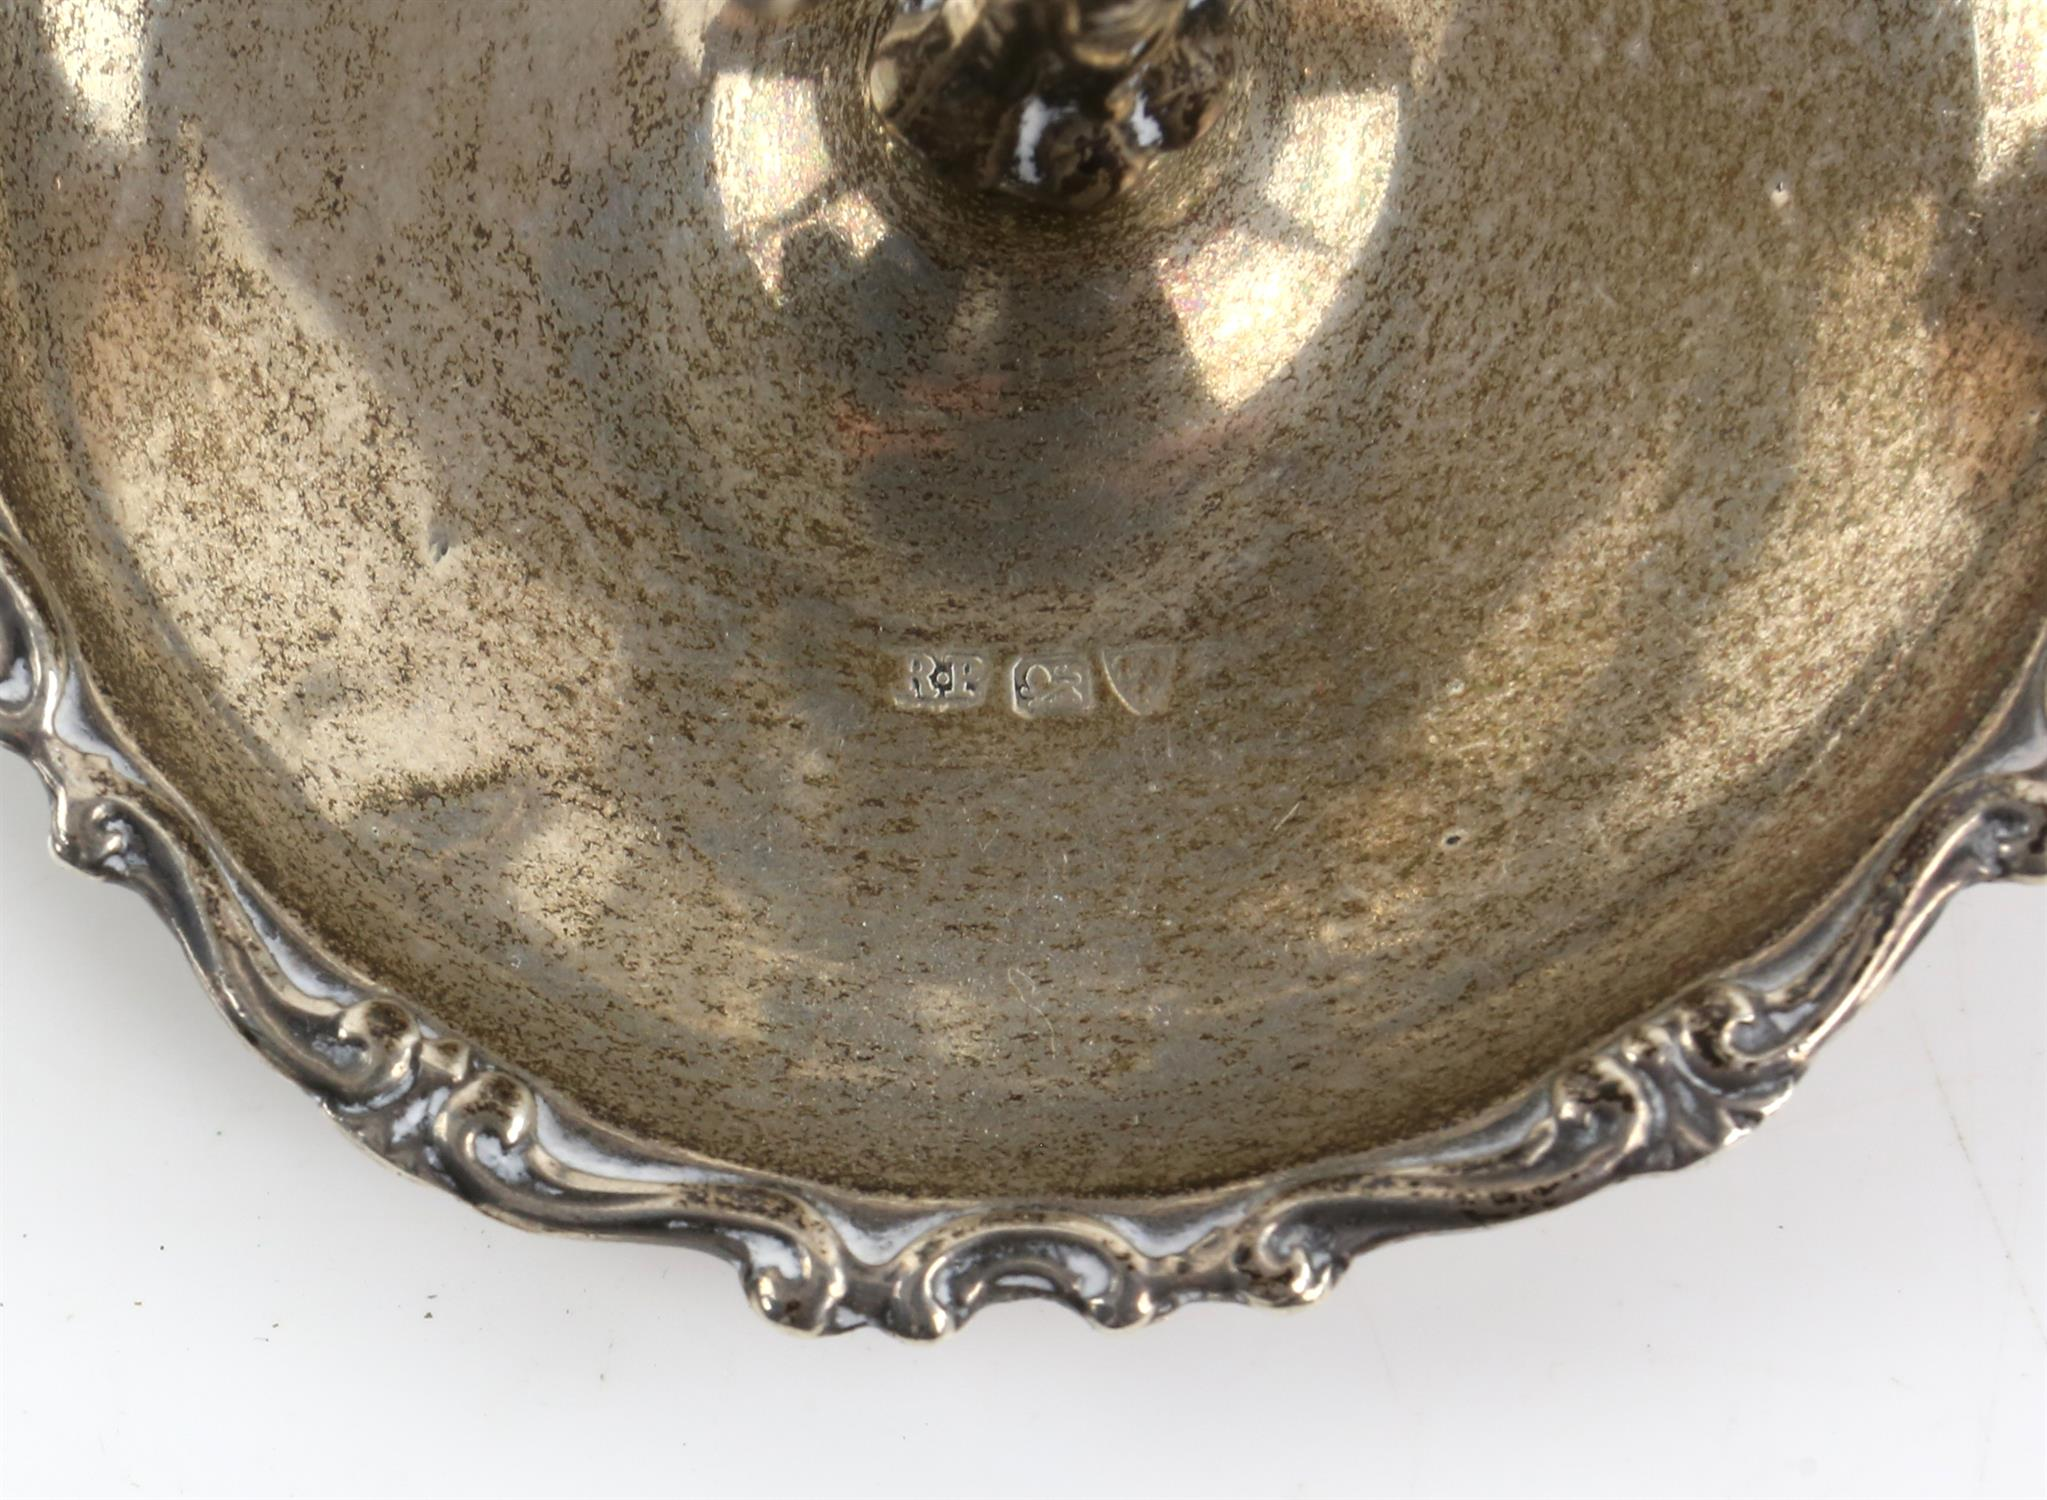 20th century silver ring tree, by Robert Pringle & Sons, Chester, date mark rubbed, 1oz, 33.5g, 7. - Image 2 of 2